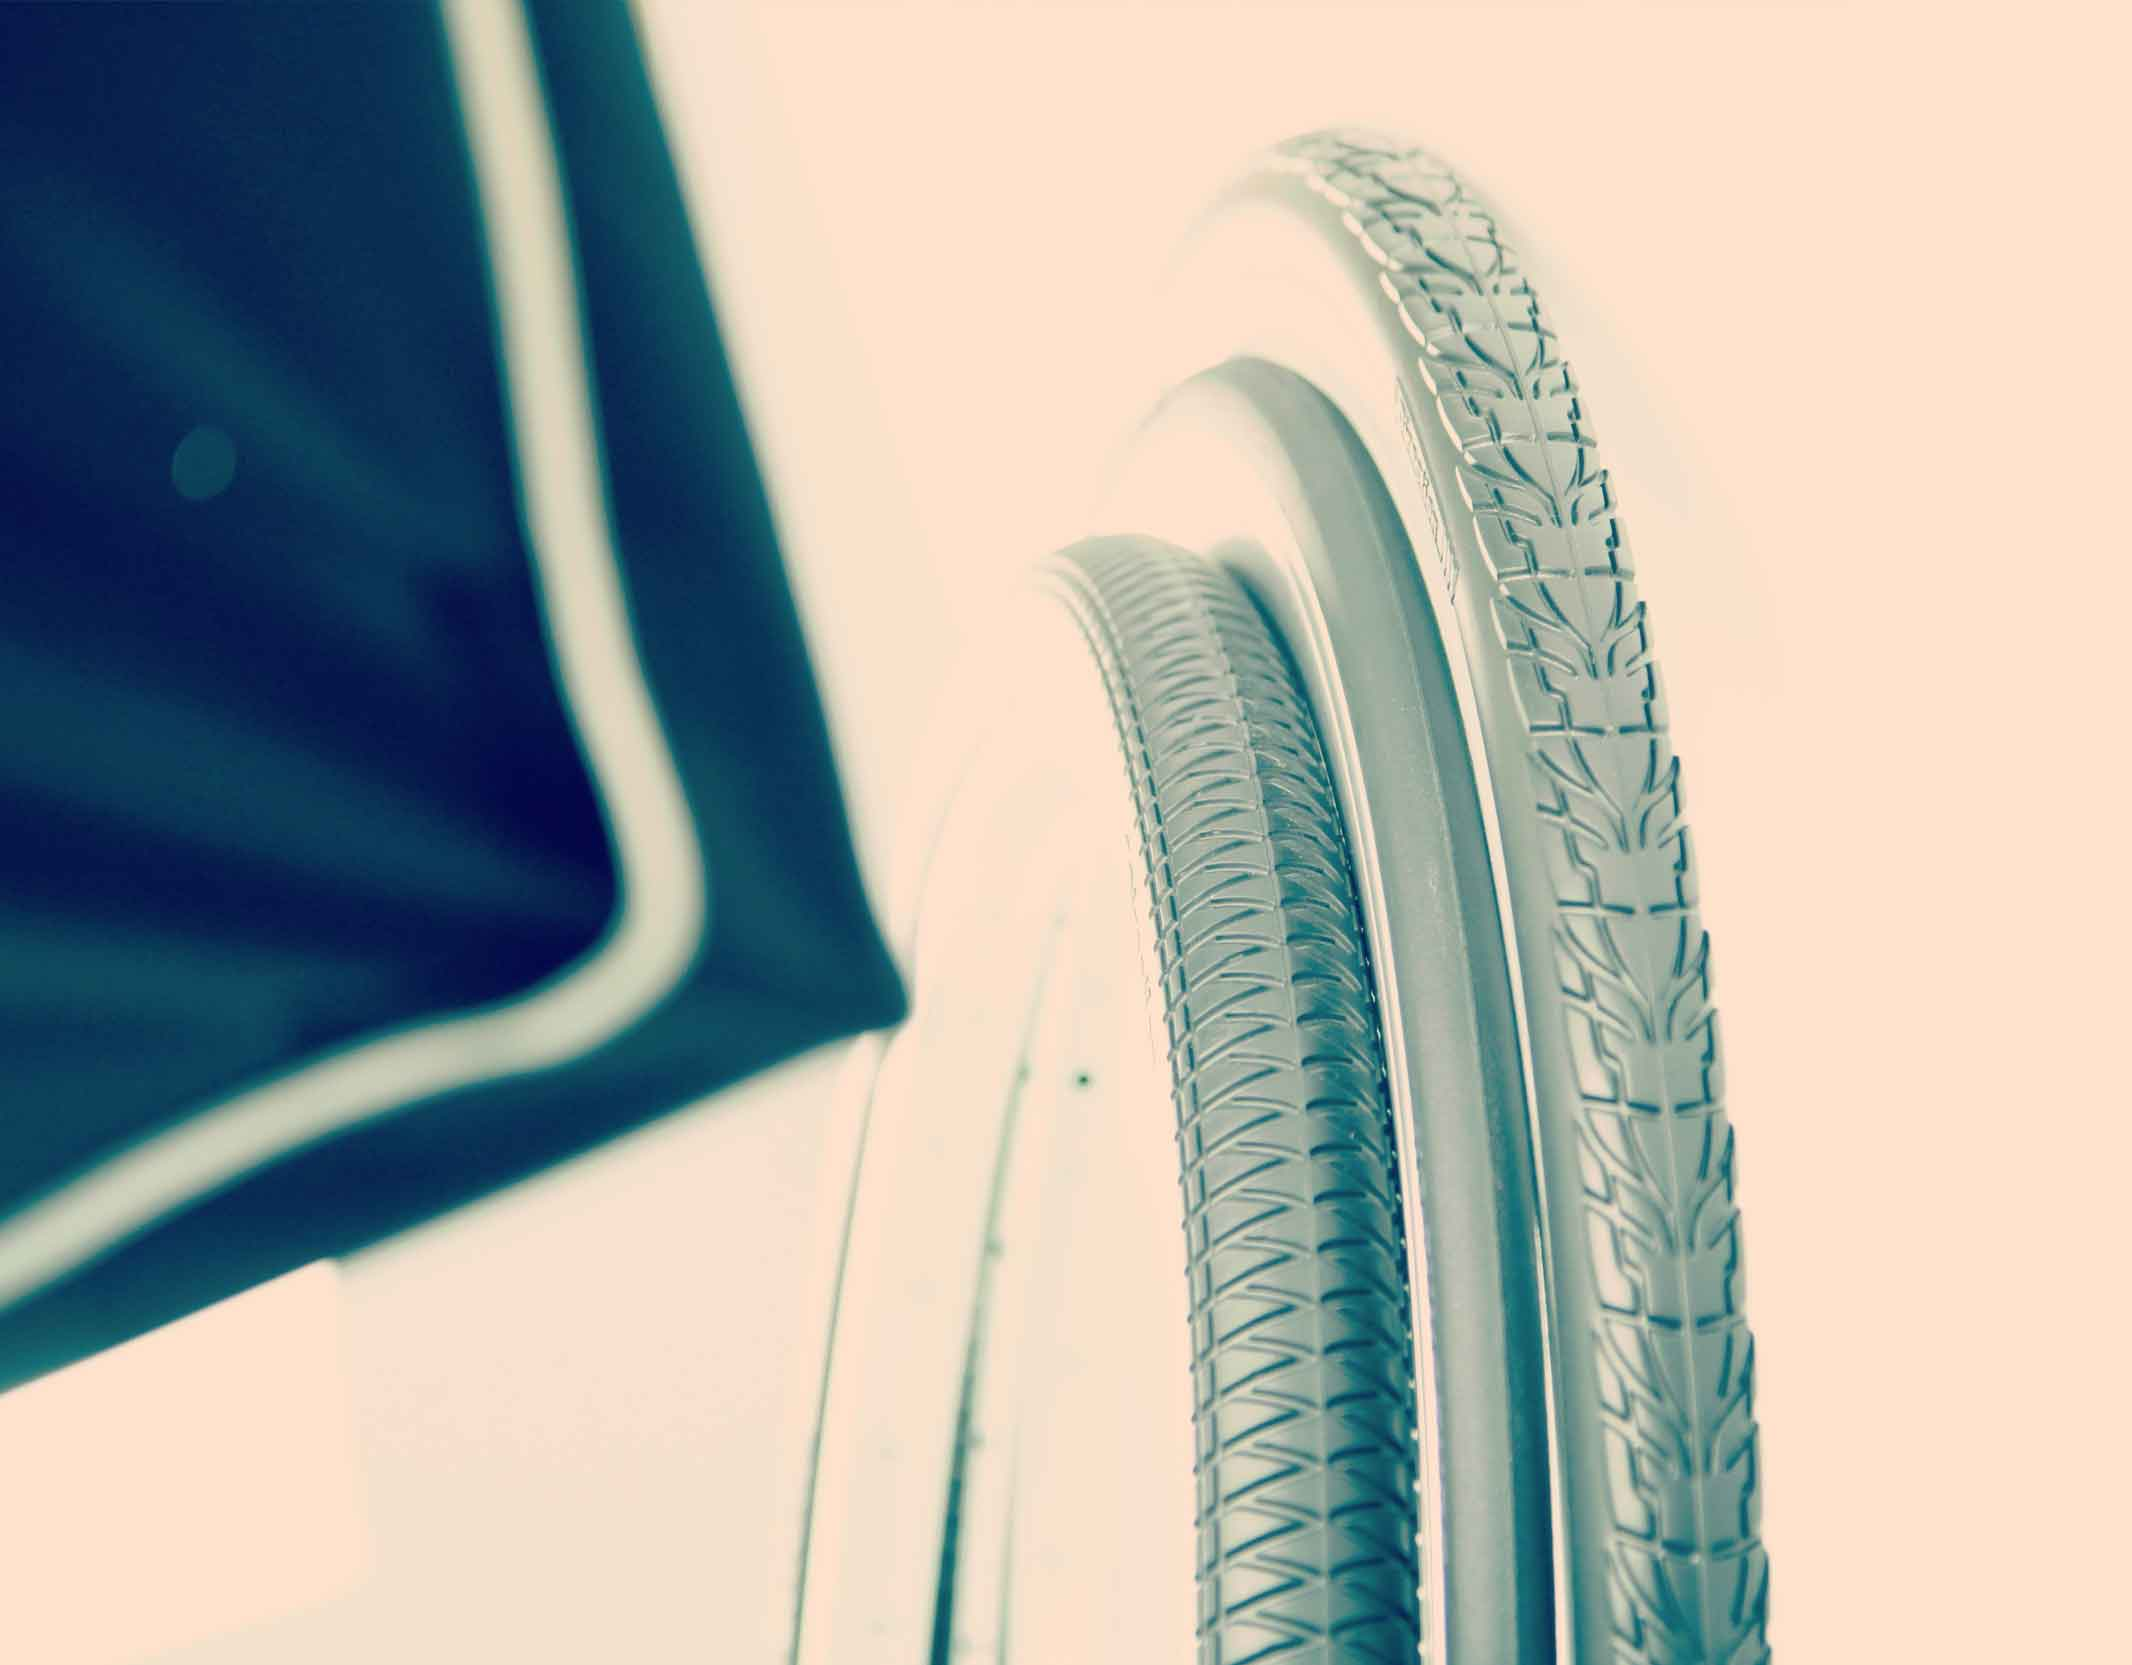 Tannus Tires - Solid Bicycle Tires